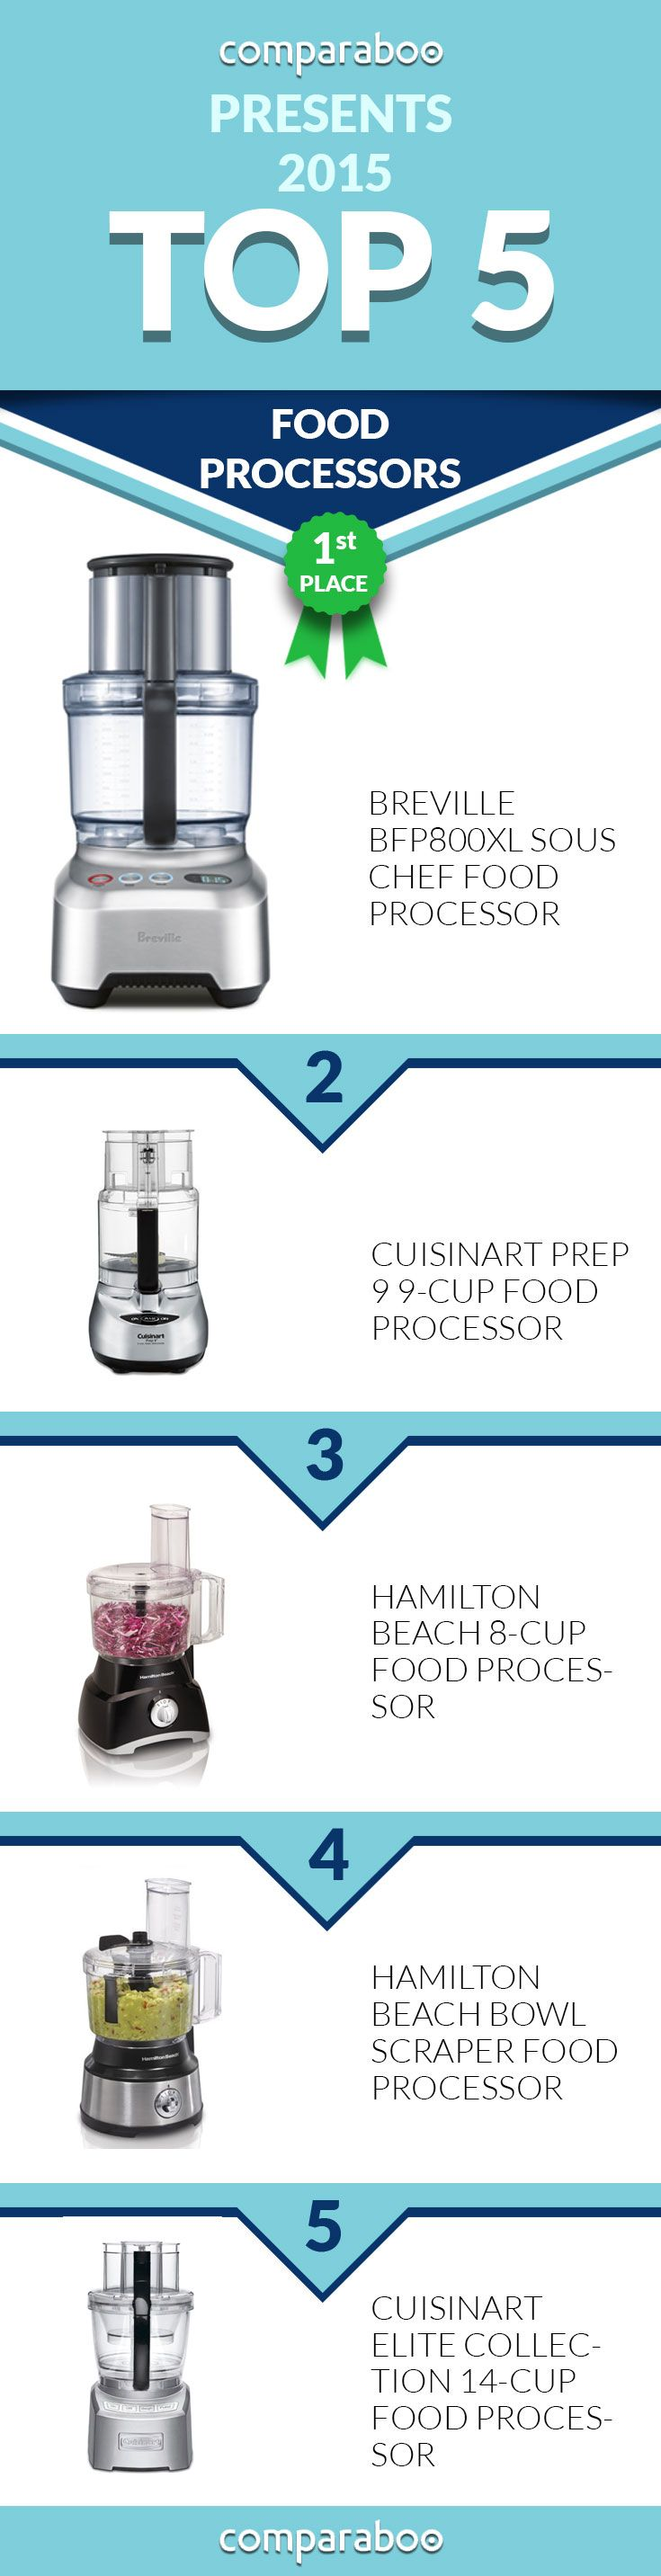 27 best Appliances images on Pinterest | Stoves, Kitchen designs and ...